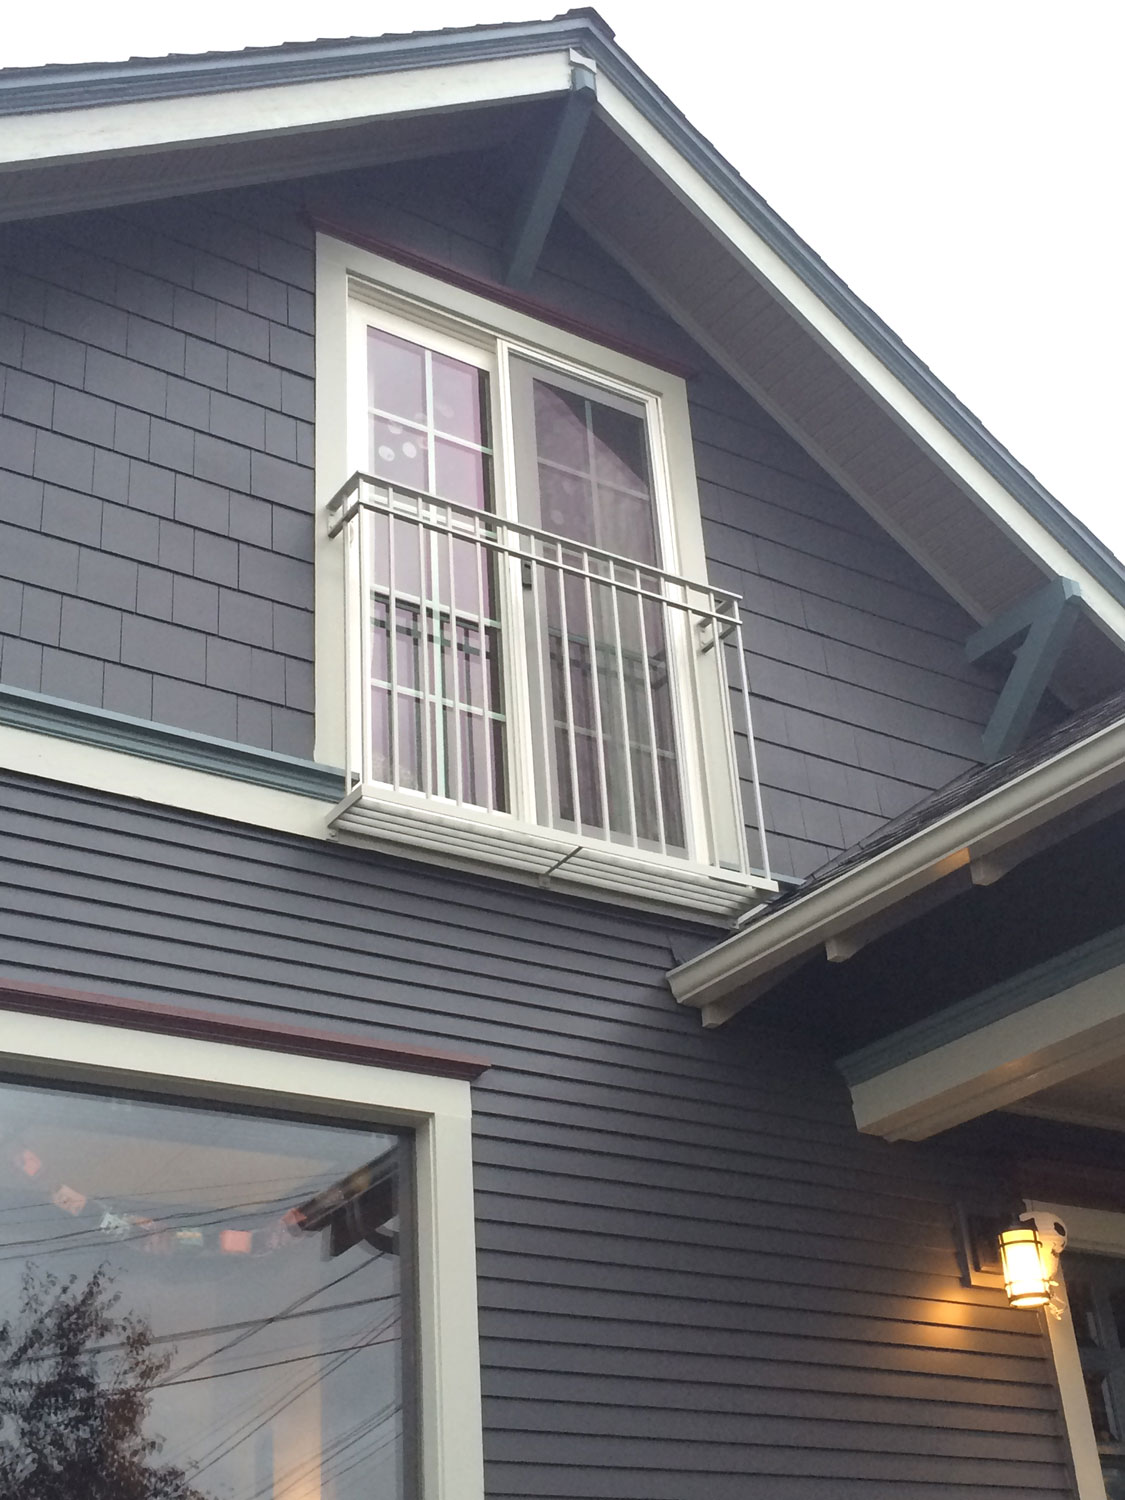 Iron Balcony Guardrail for Second Story Window - from distance - Seattle, WA